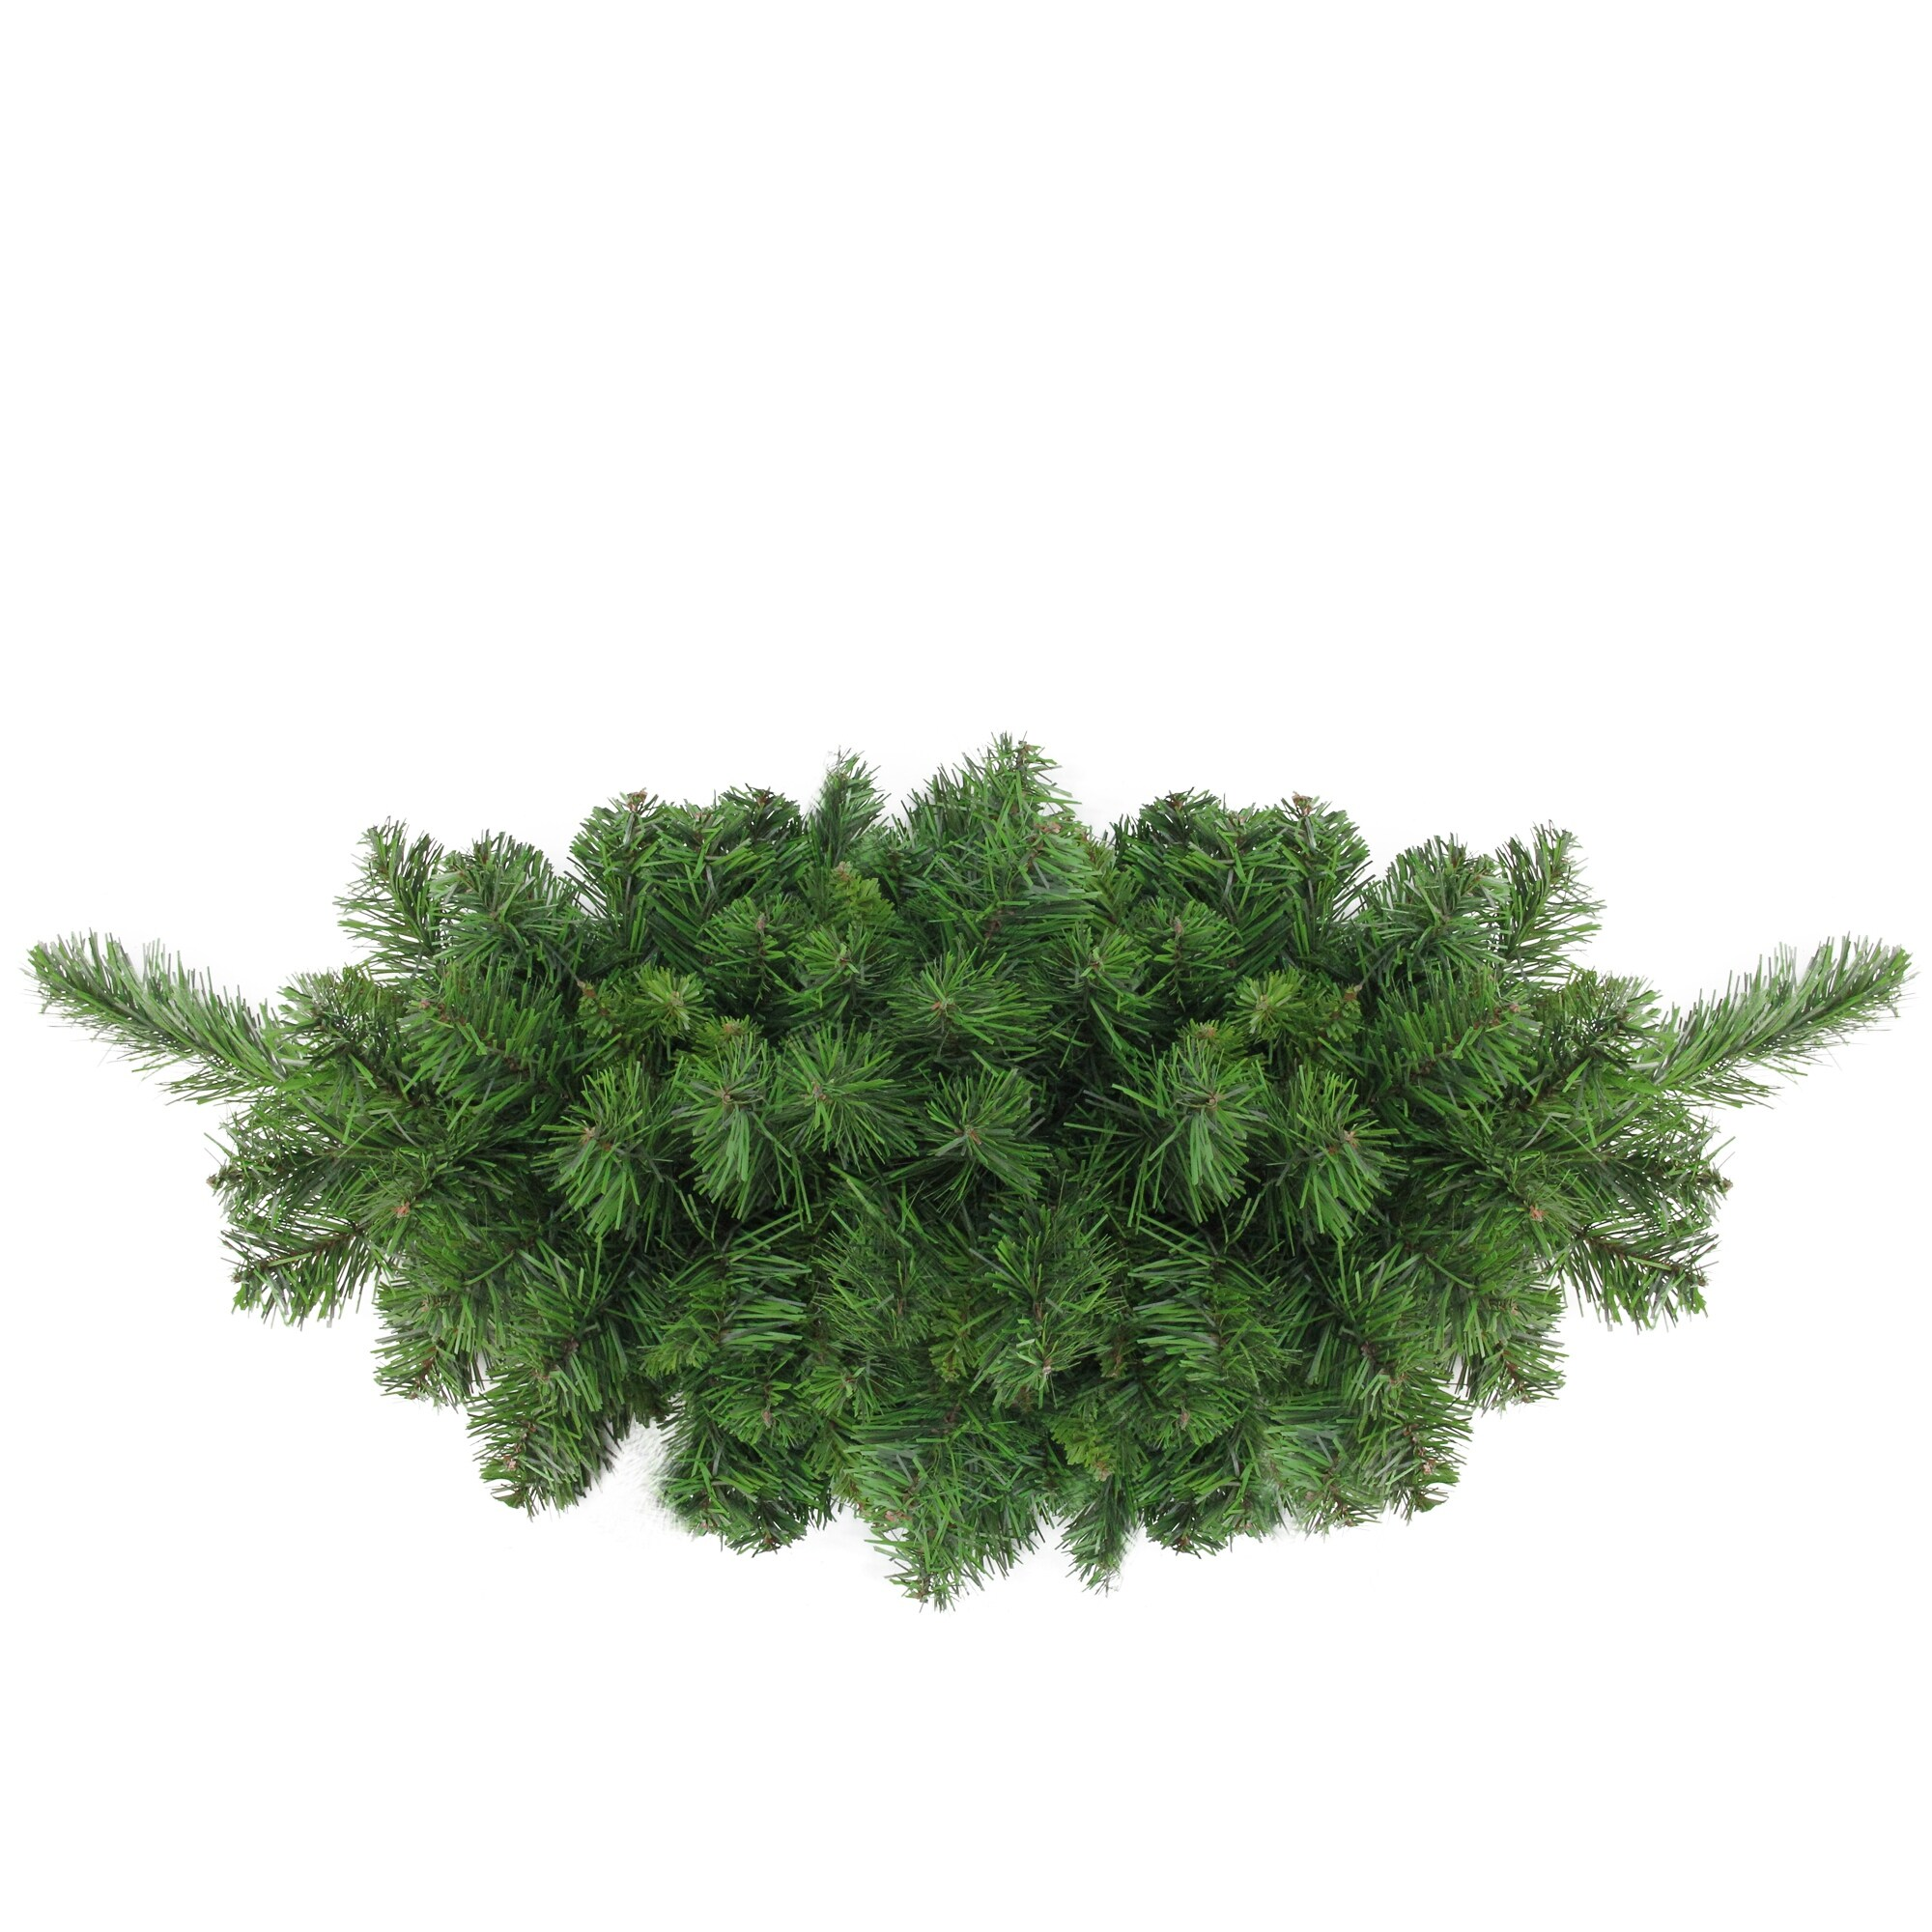 Christmas Swag.32 Lush Mixed Pine Artificial Christmas Swag Unlit N A